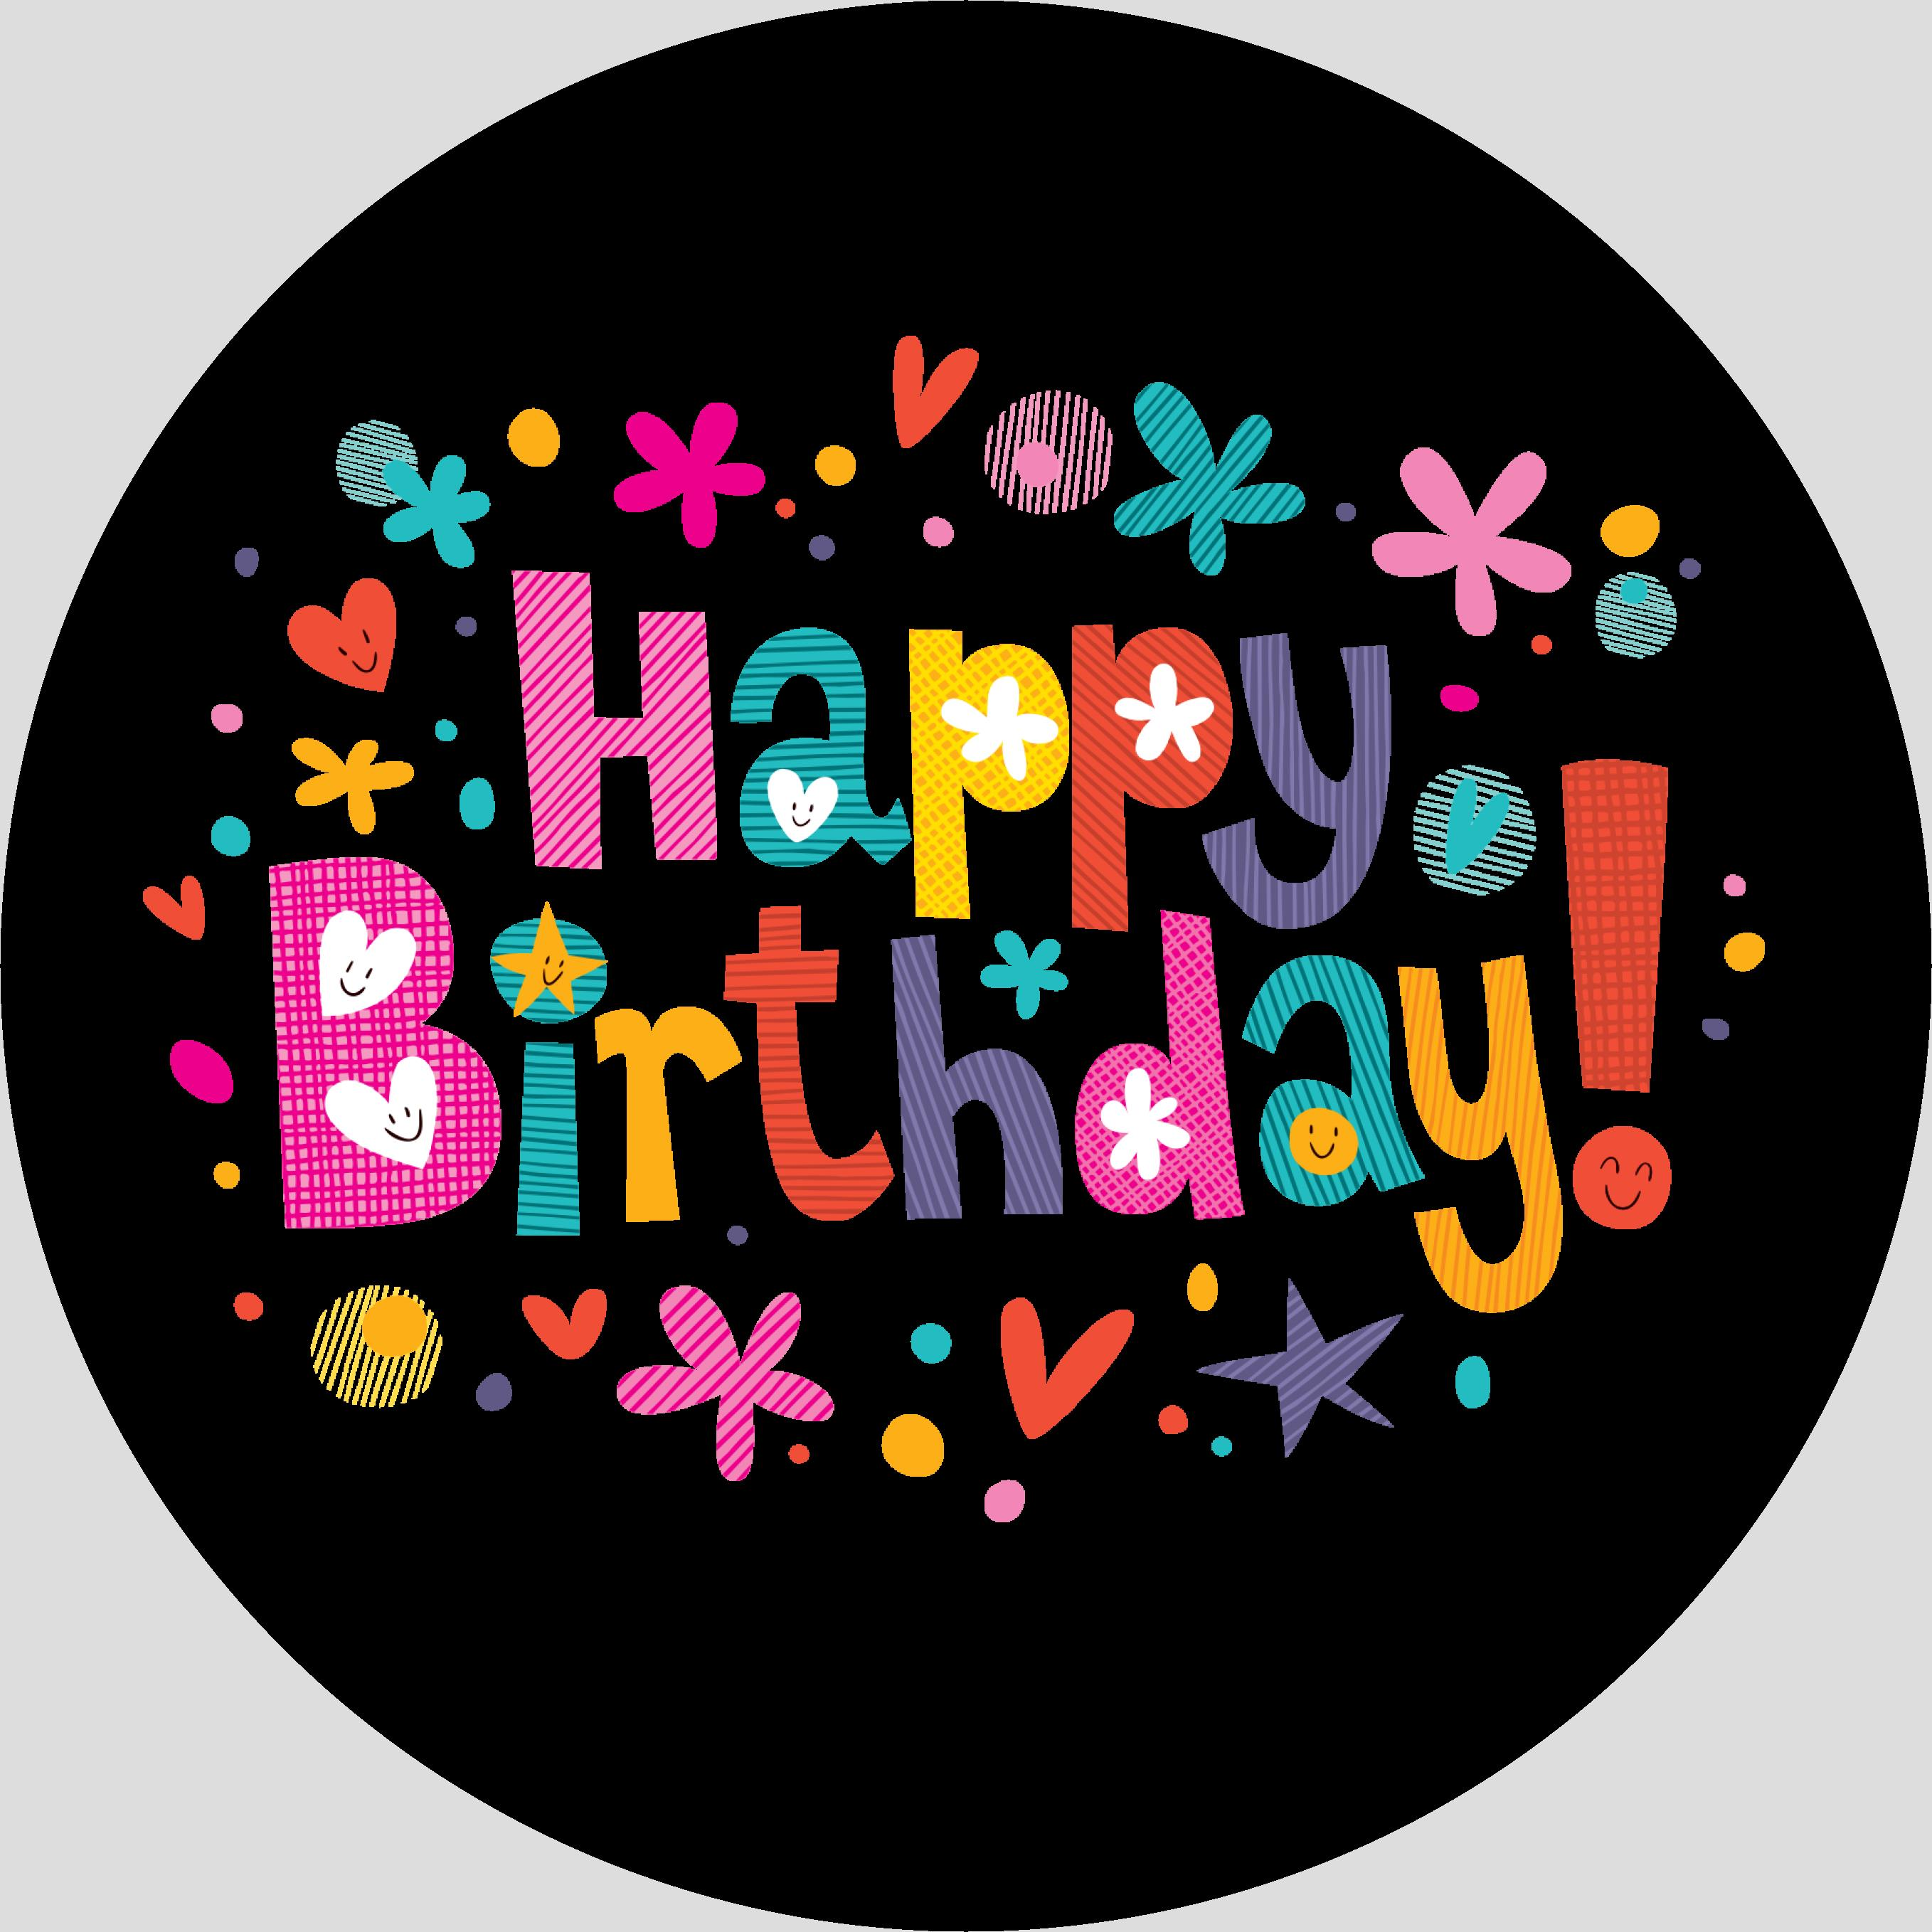 happy birthday tag images ; happy-birthday-png-3